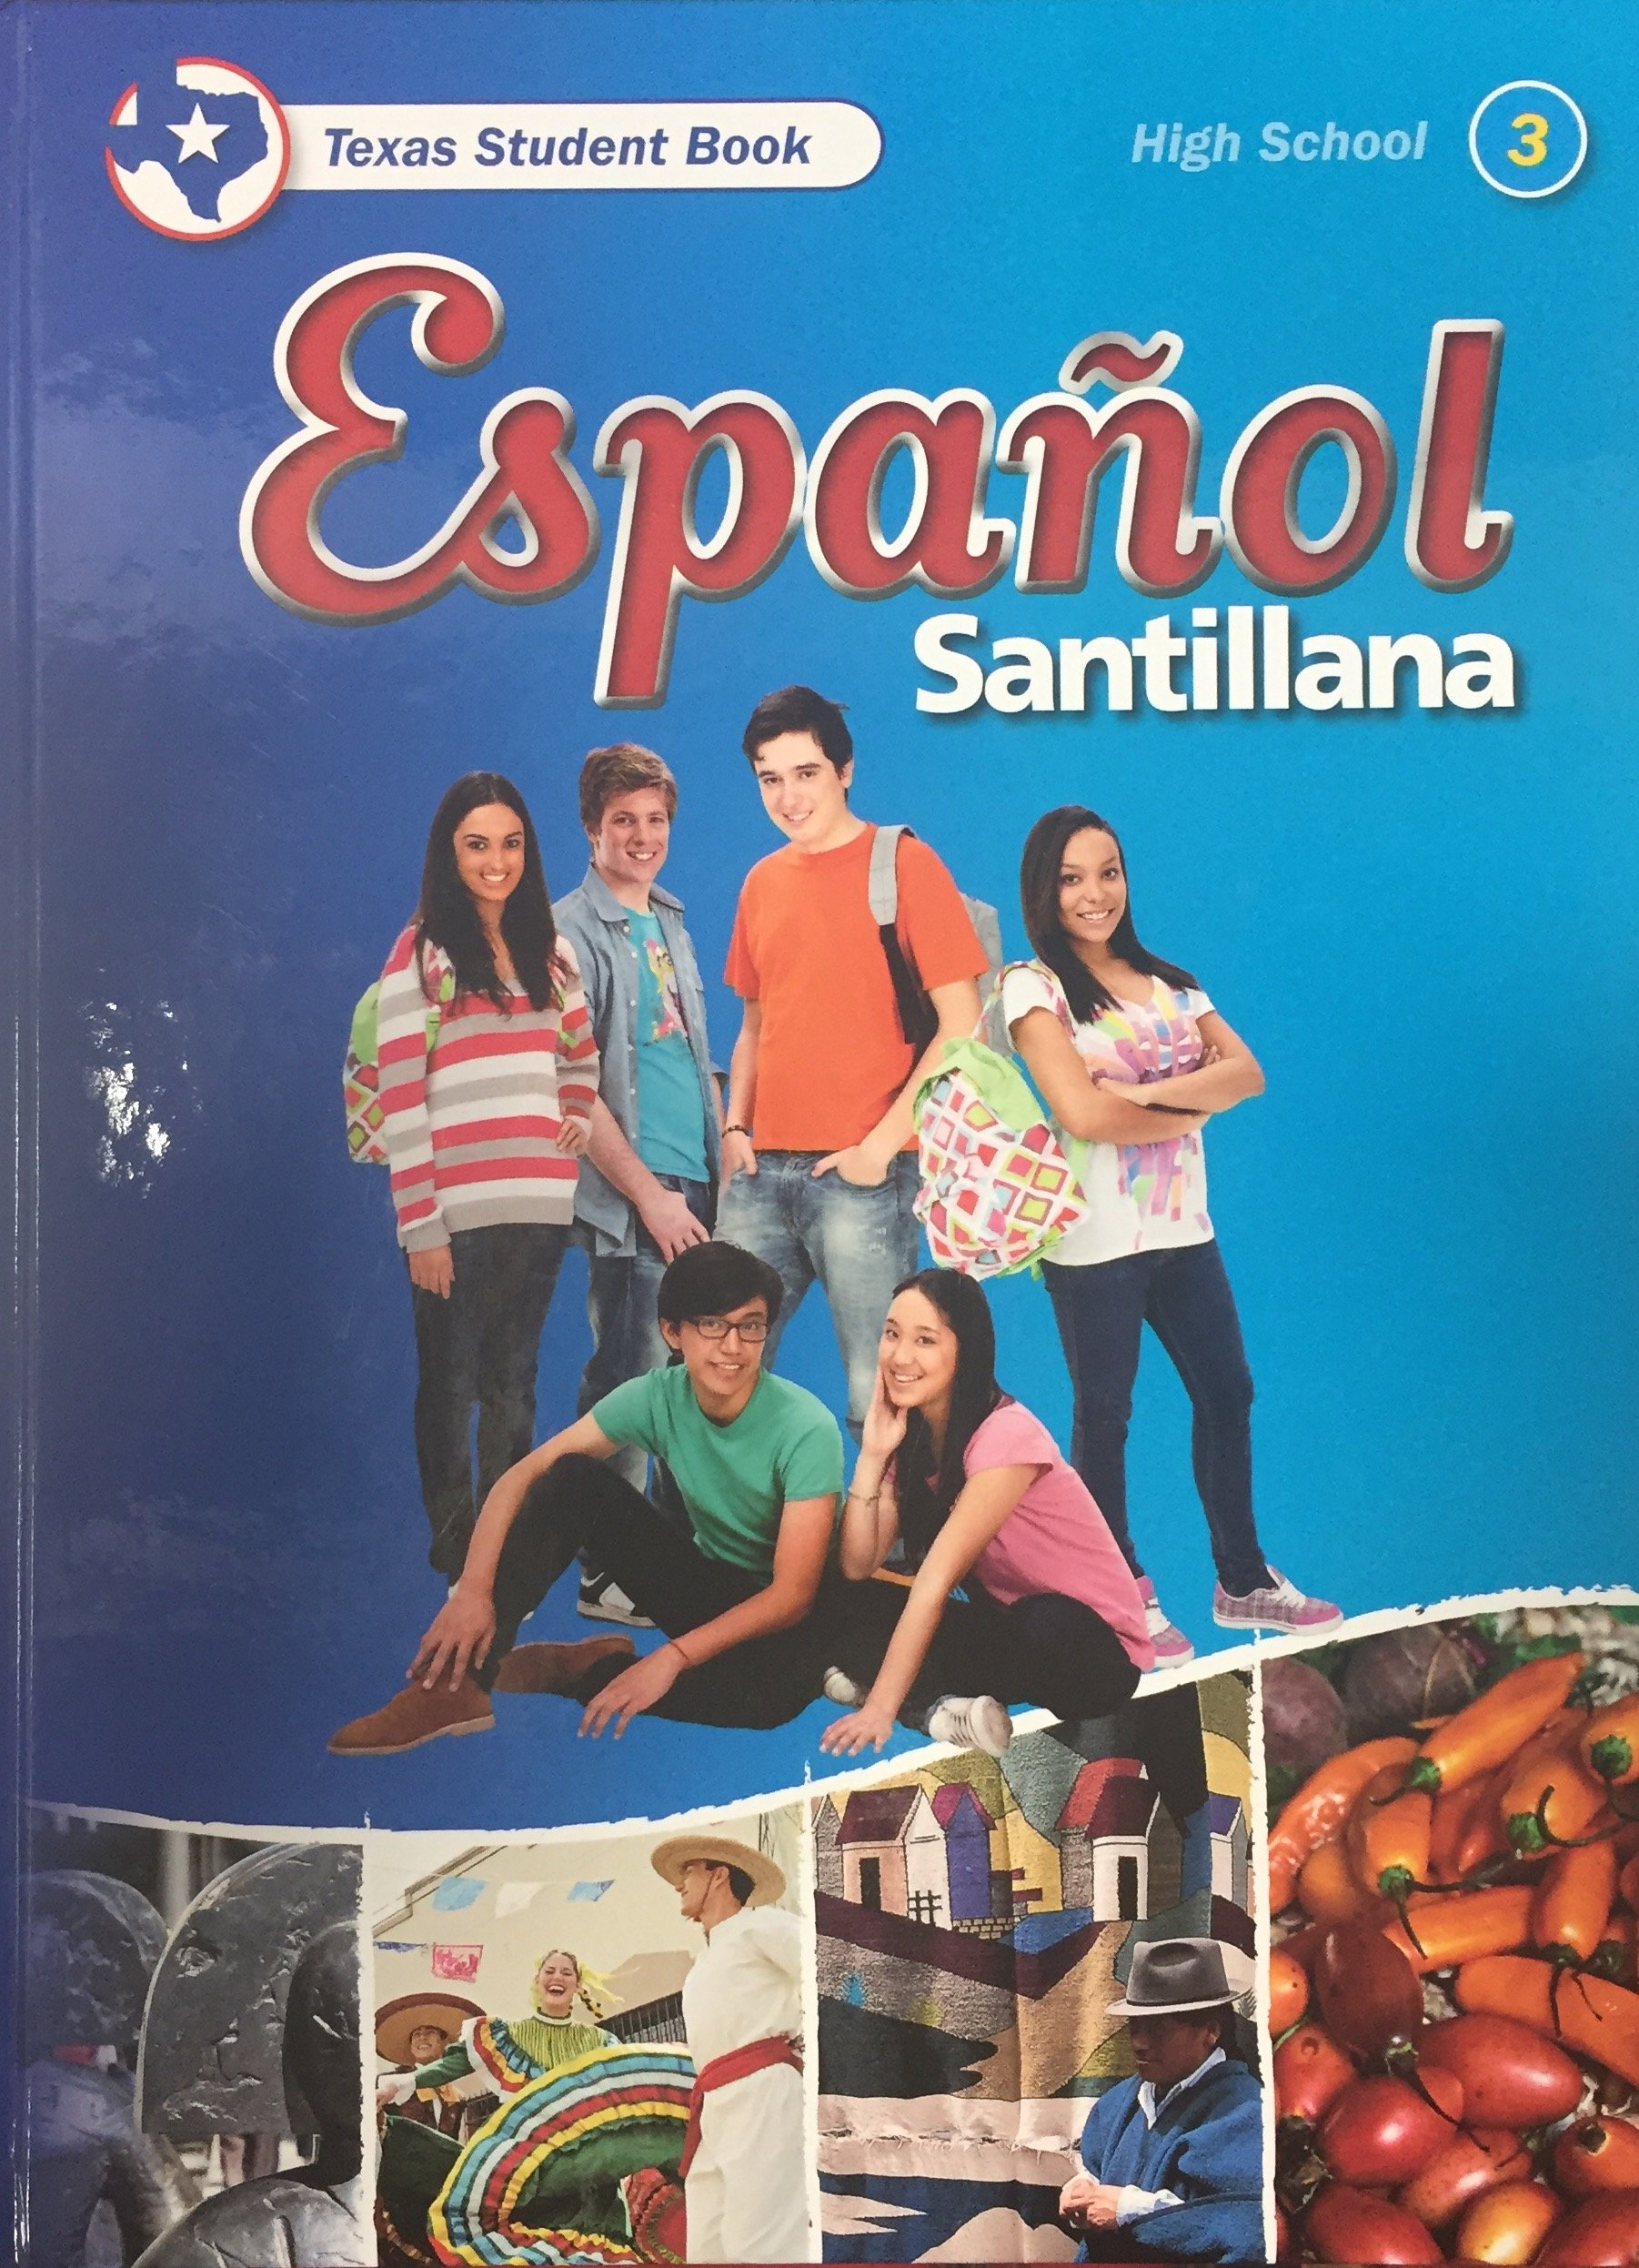 High School Spanish Textbook Pdf